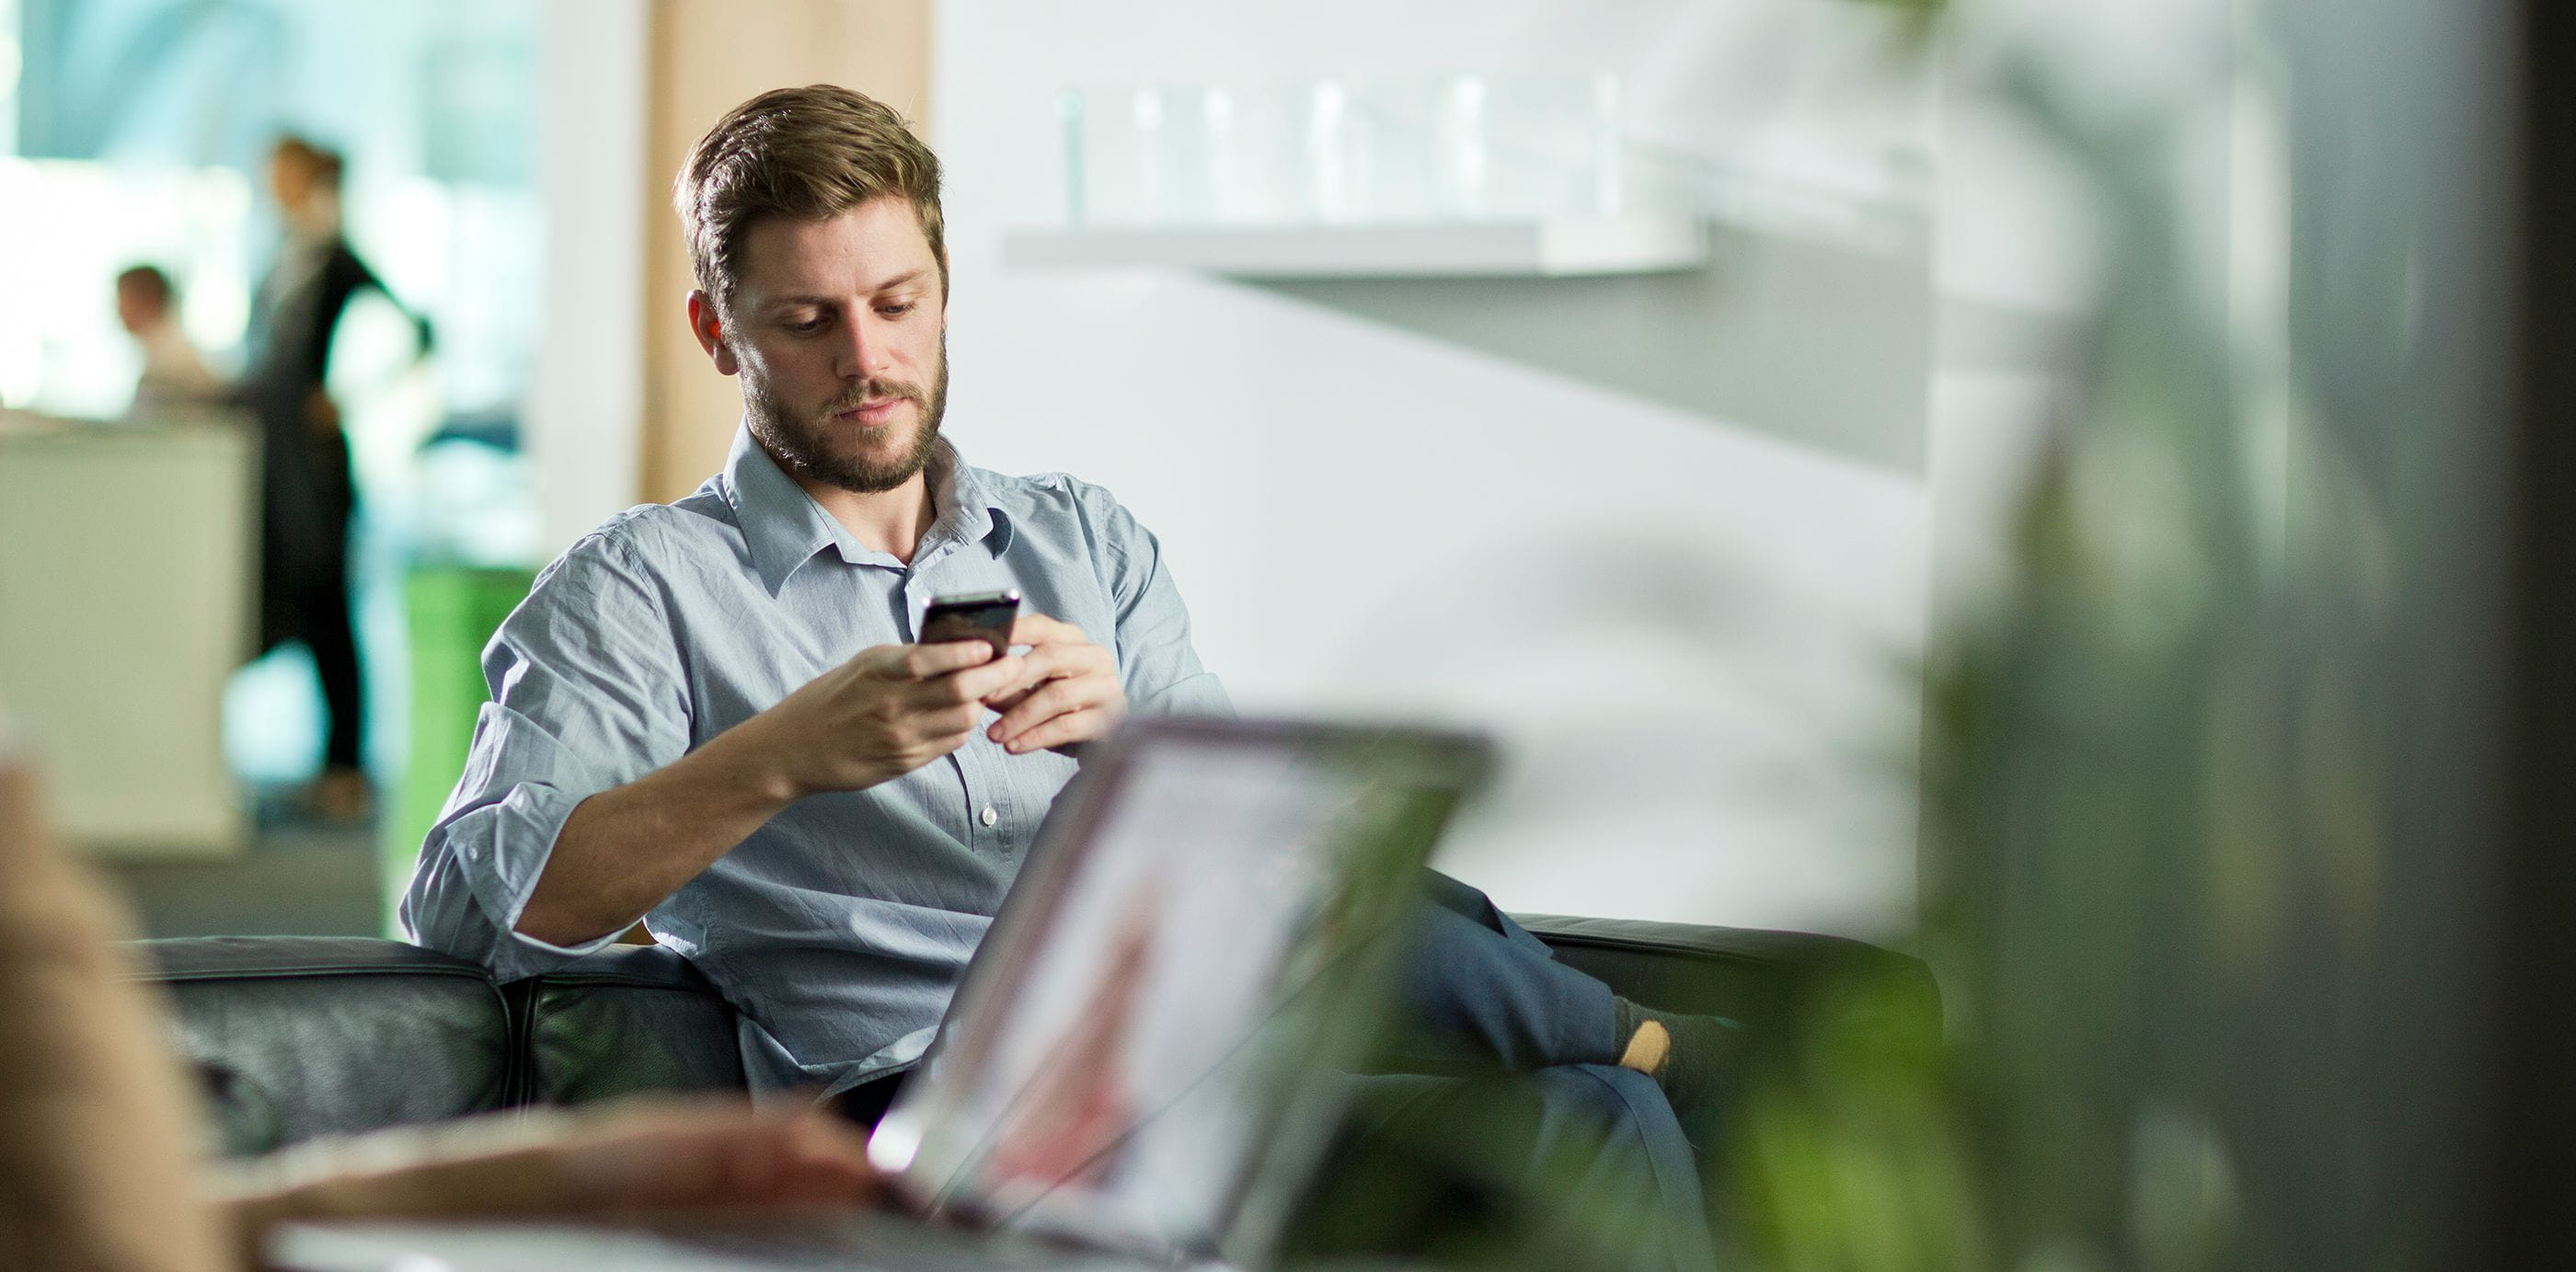 Brother OmniJoin man on phone in office waiting room